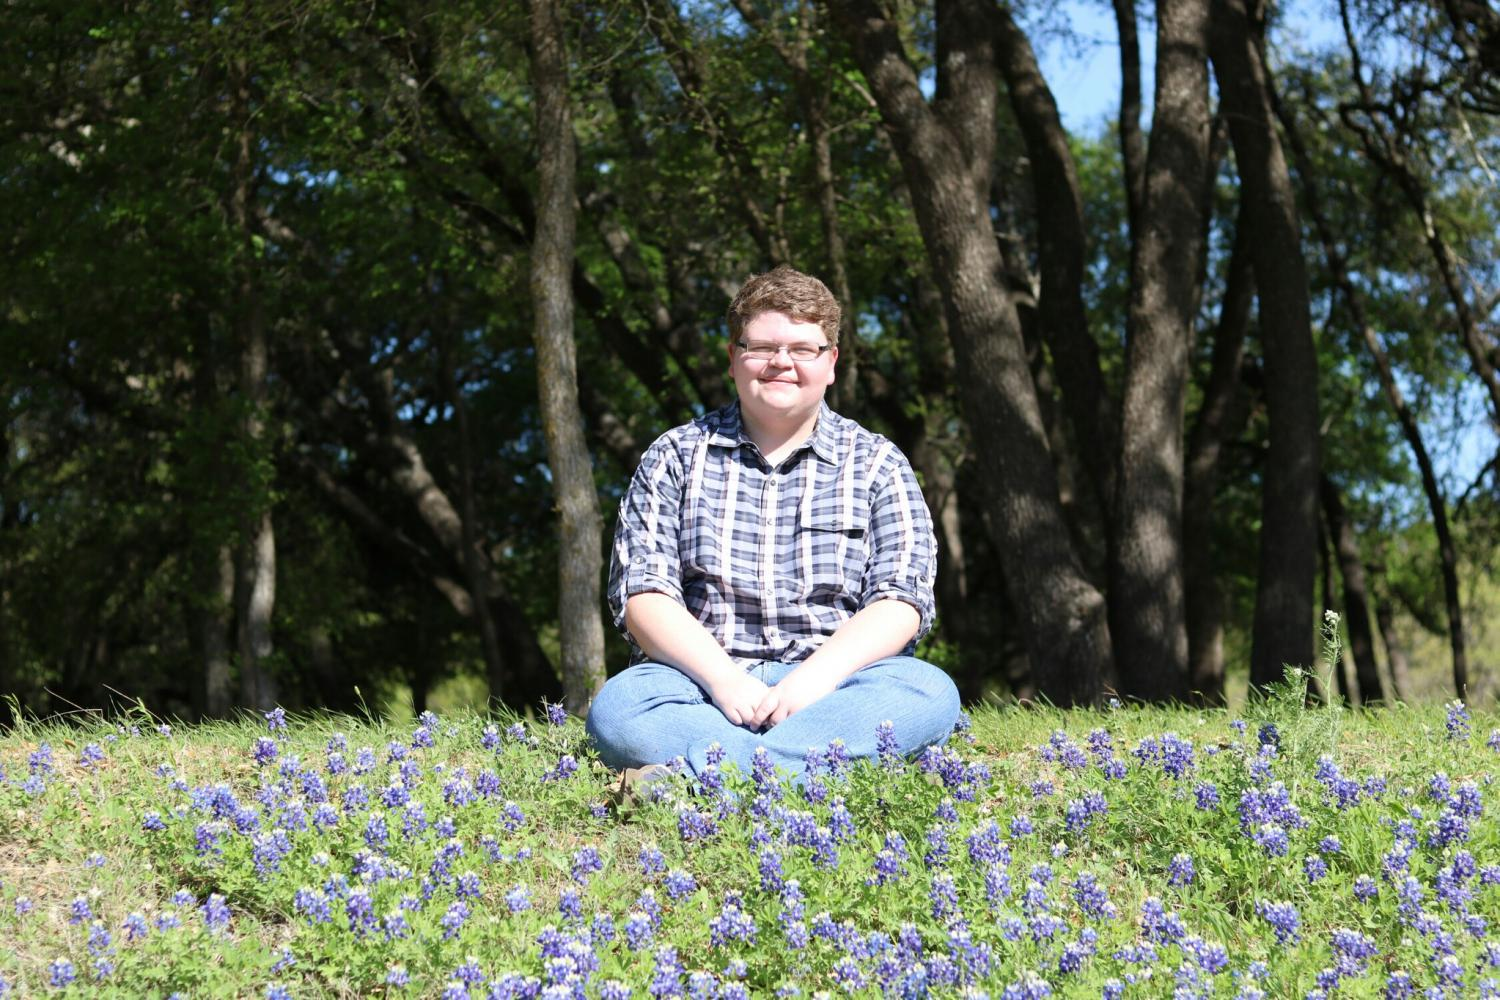 Excited for graduation, senior Zach Burleson can't wait to attend Stephen F. Austin University.